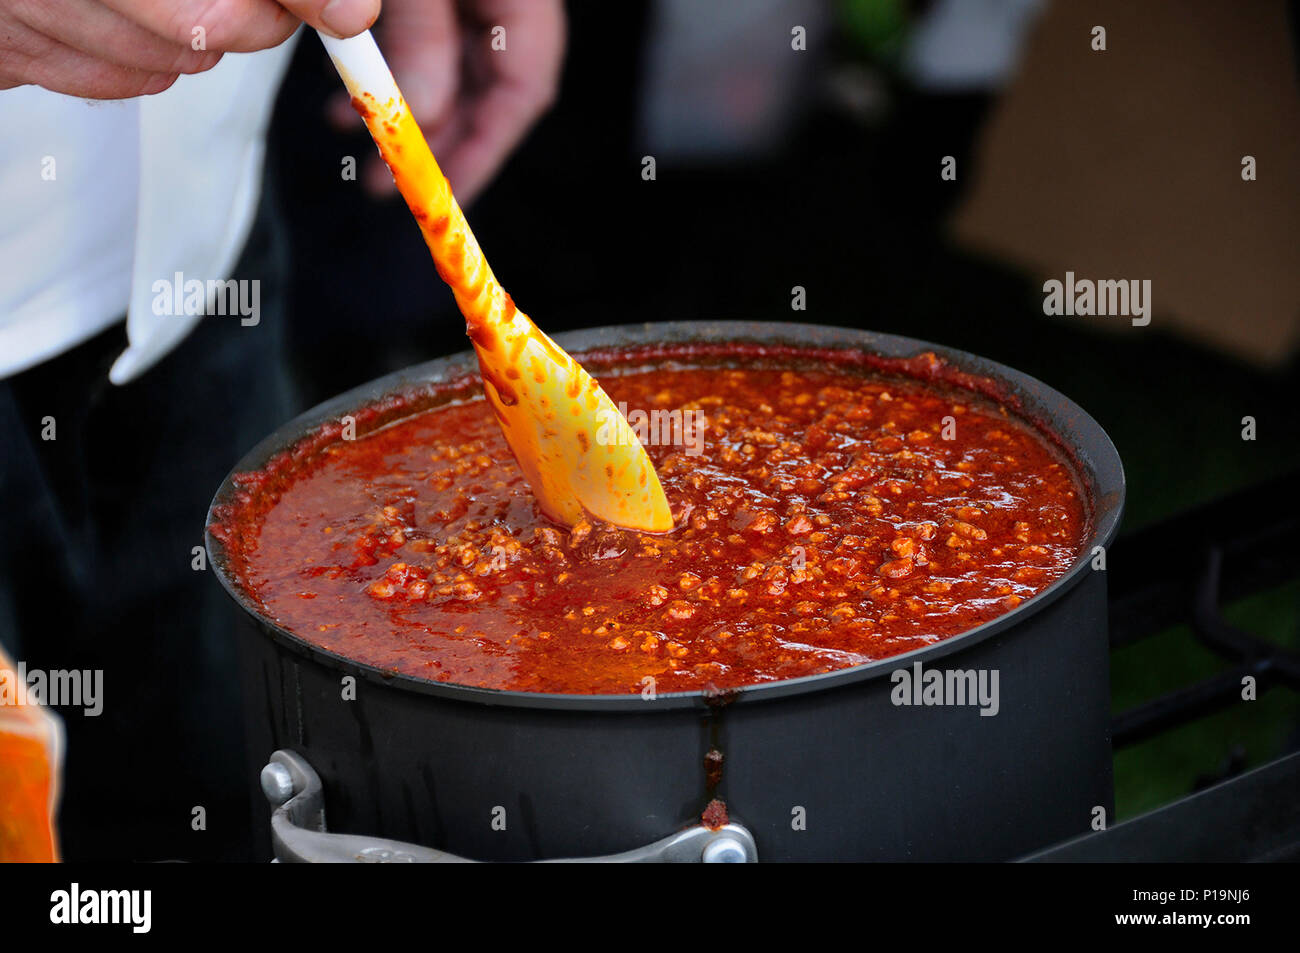 Cook Stirring a Simmering Pot of Spicy Chili - Stock Image